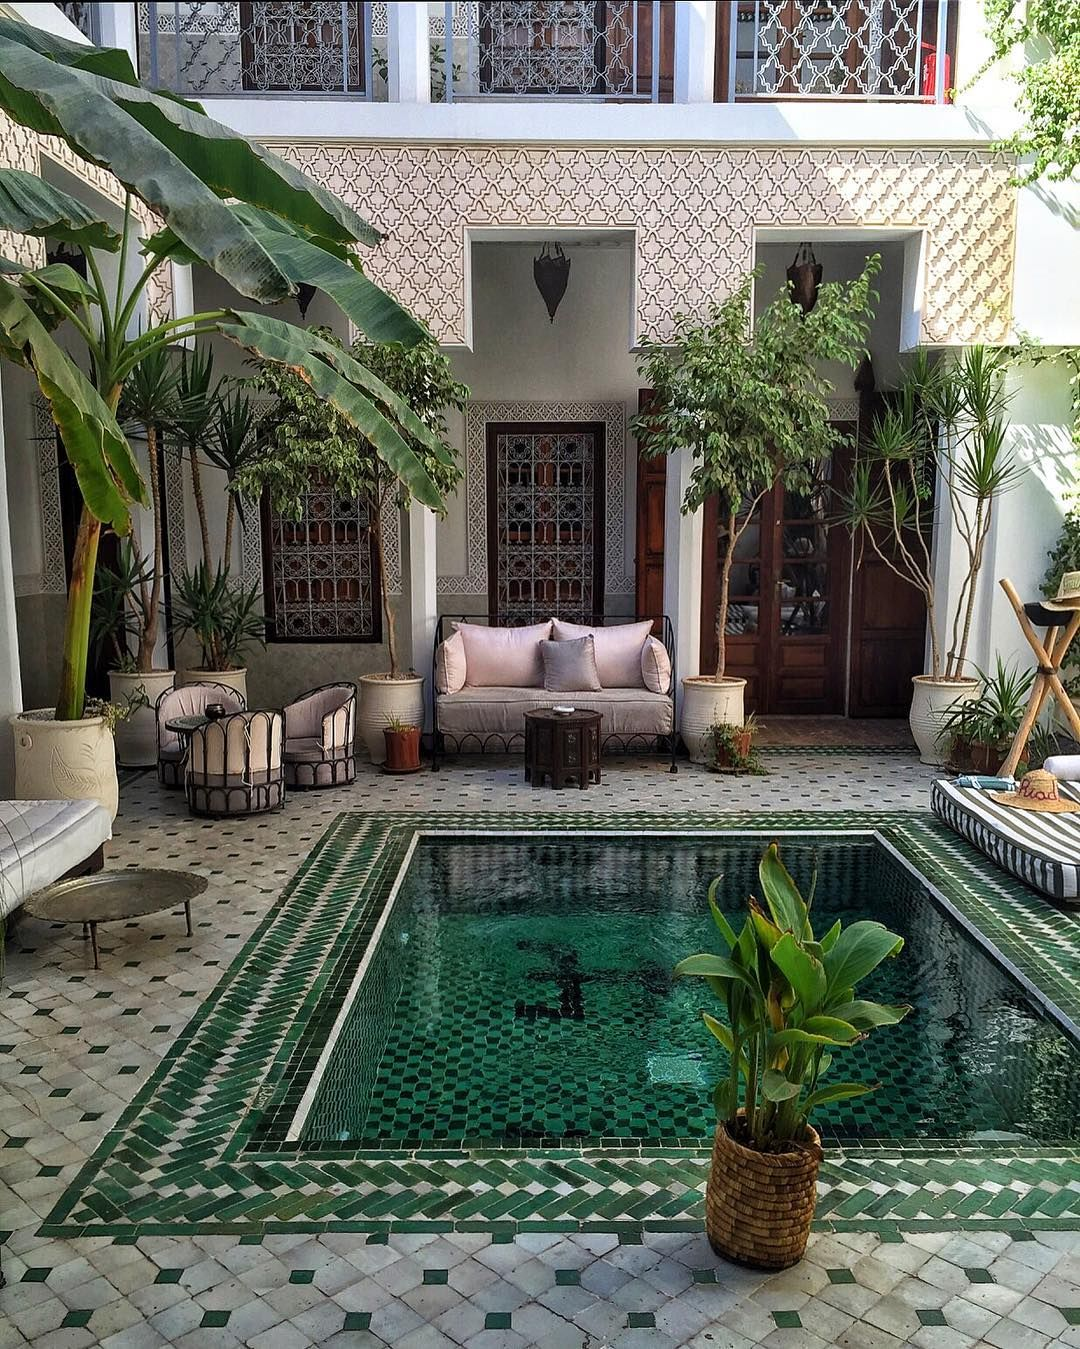 Le riad yasmine marrakesh hotel pinterest marrakesh boho and